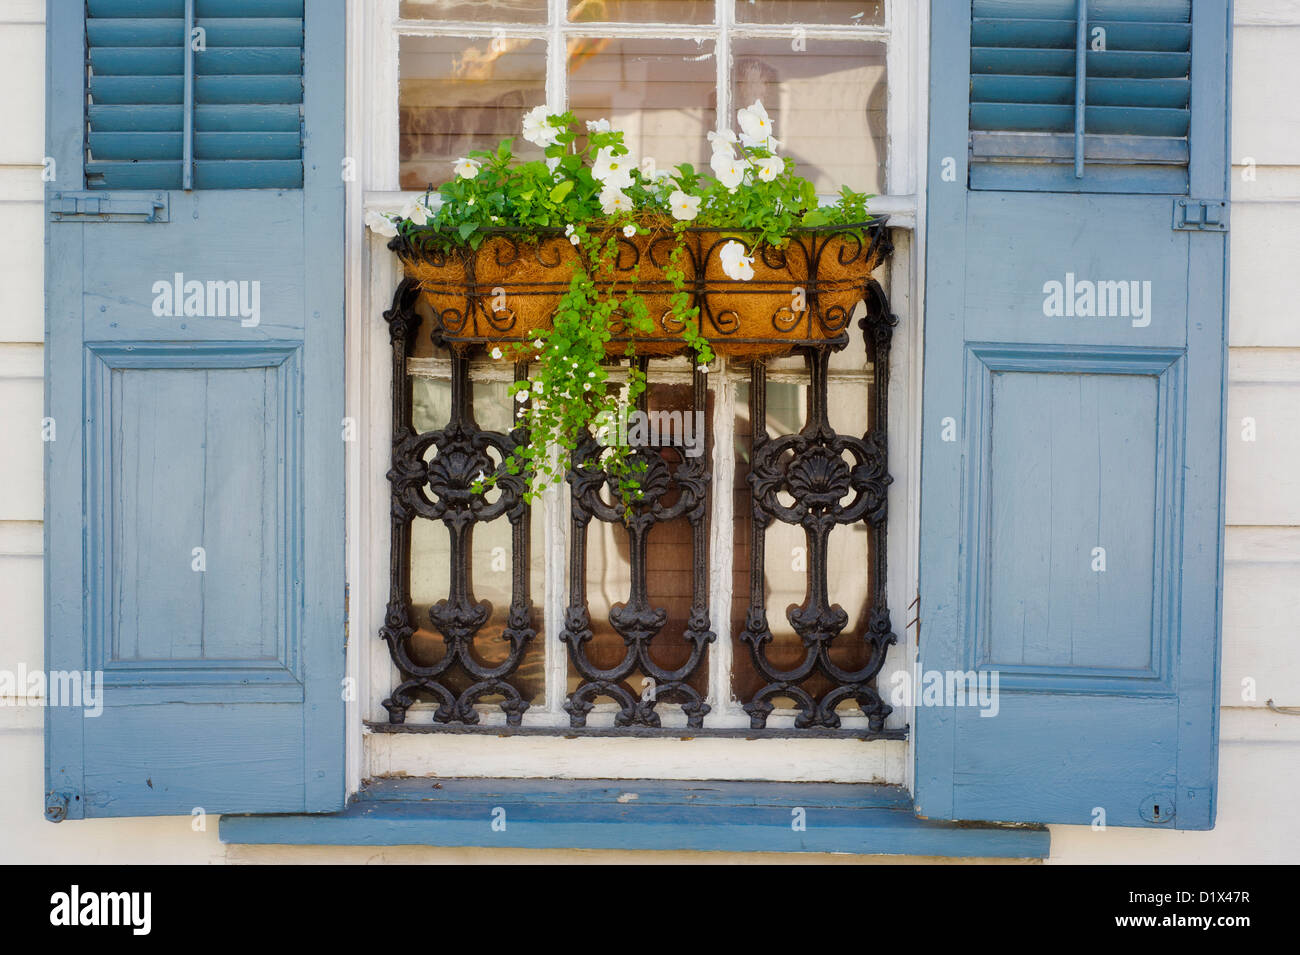 A window box of flowers and blue shutters on a house in the French Quarter in New Orleans, Louisiana. - Stock Image